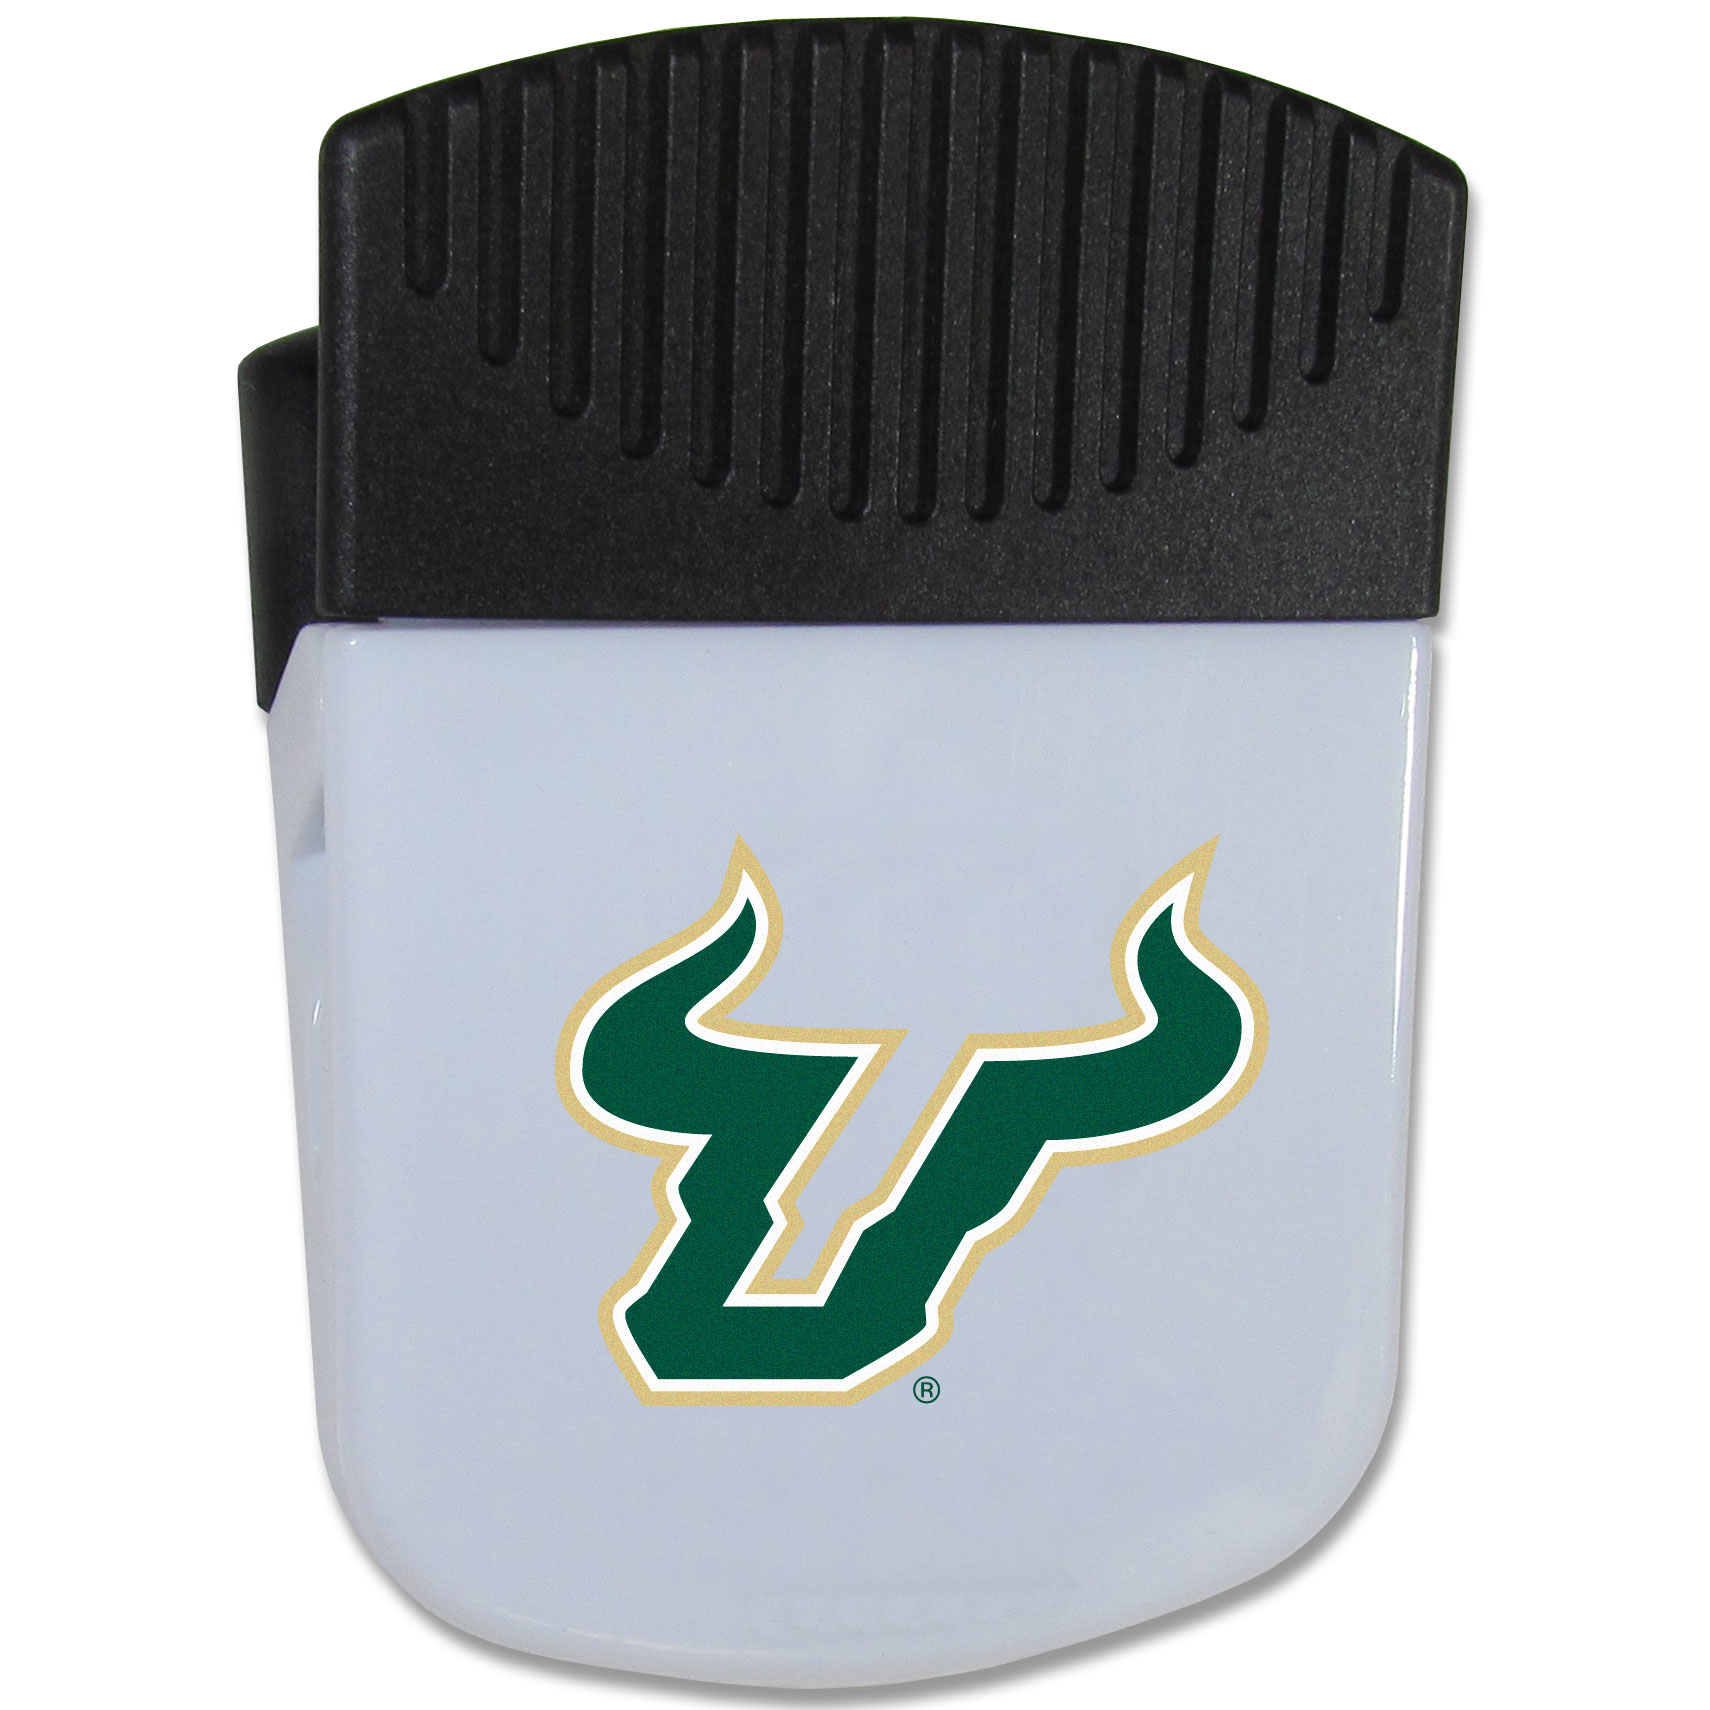 South Florida Bulls Chip Clip Magnet - Use this attractive clip magnet to hold memos, photos or appointment cards on the fridge or take it down keep use it to clip bags shut. The magnet features a domed South Florida Bulls logo.